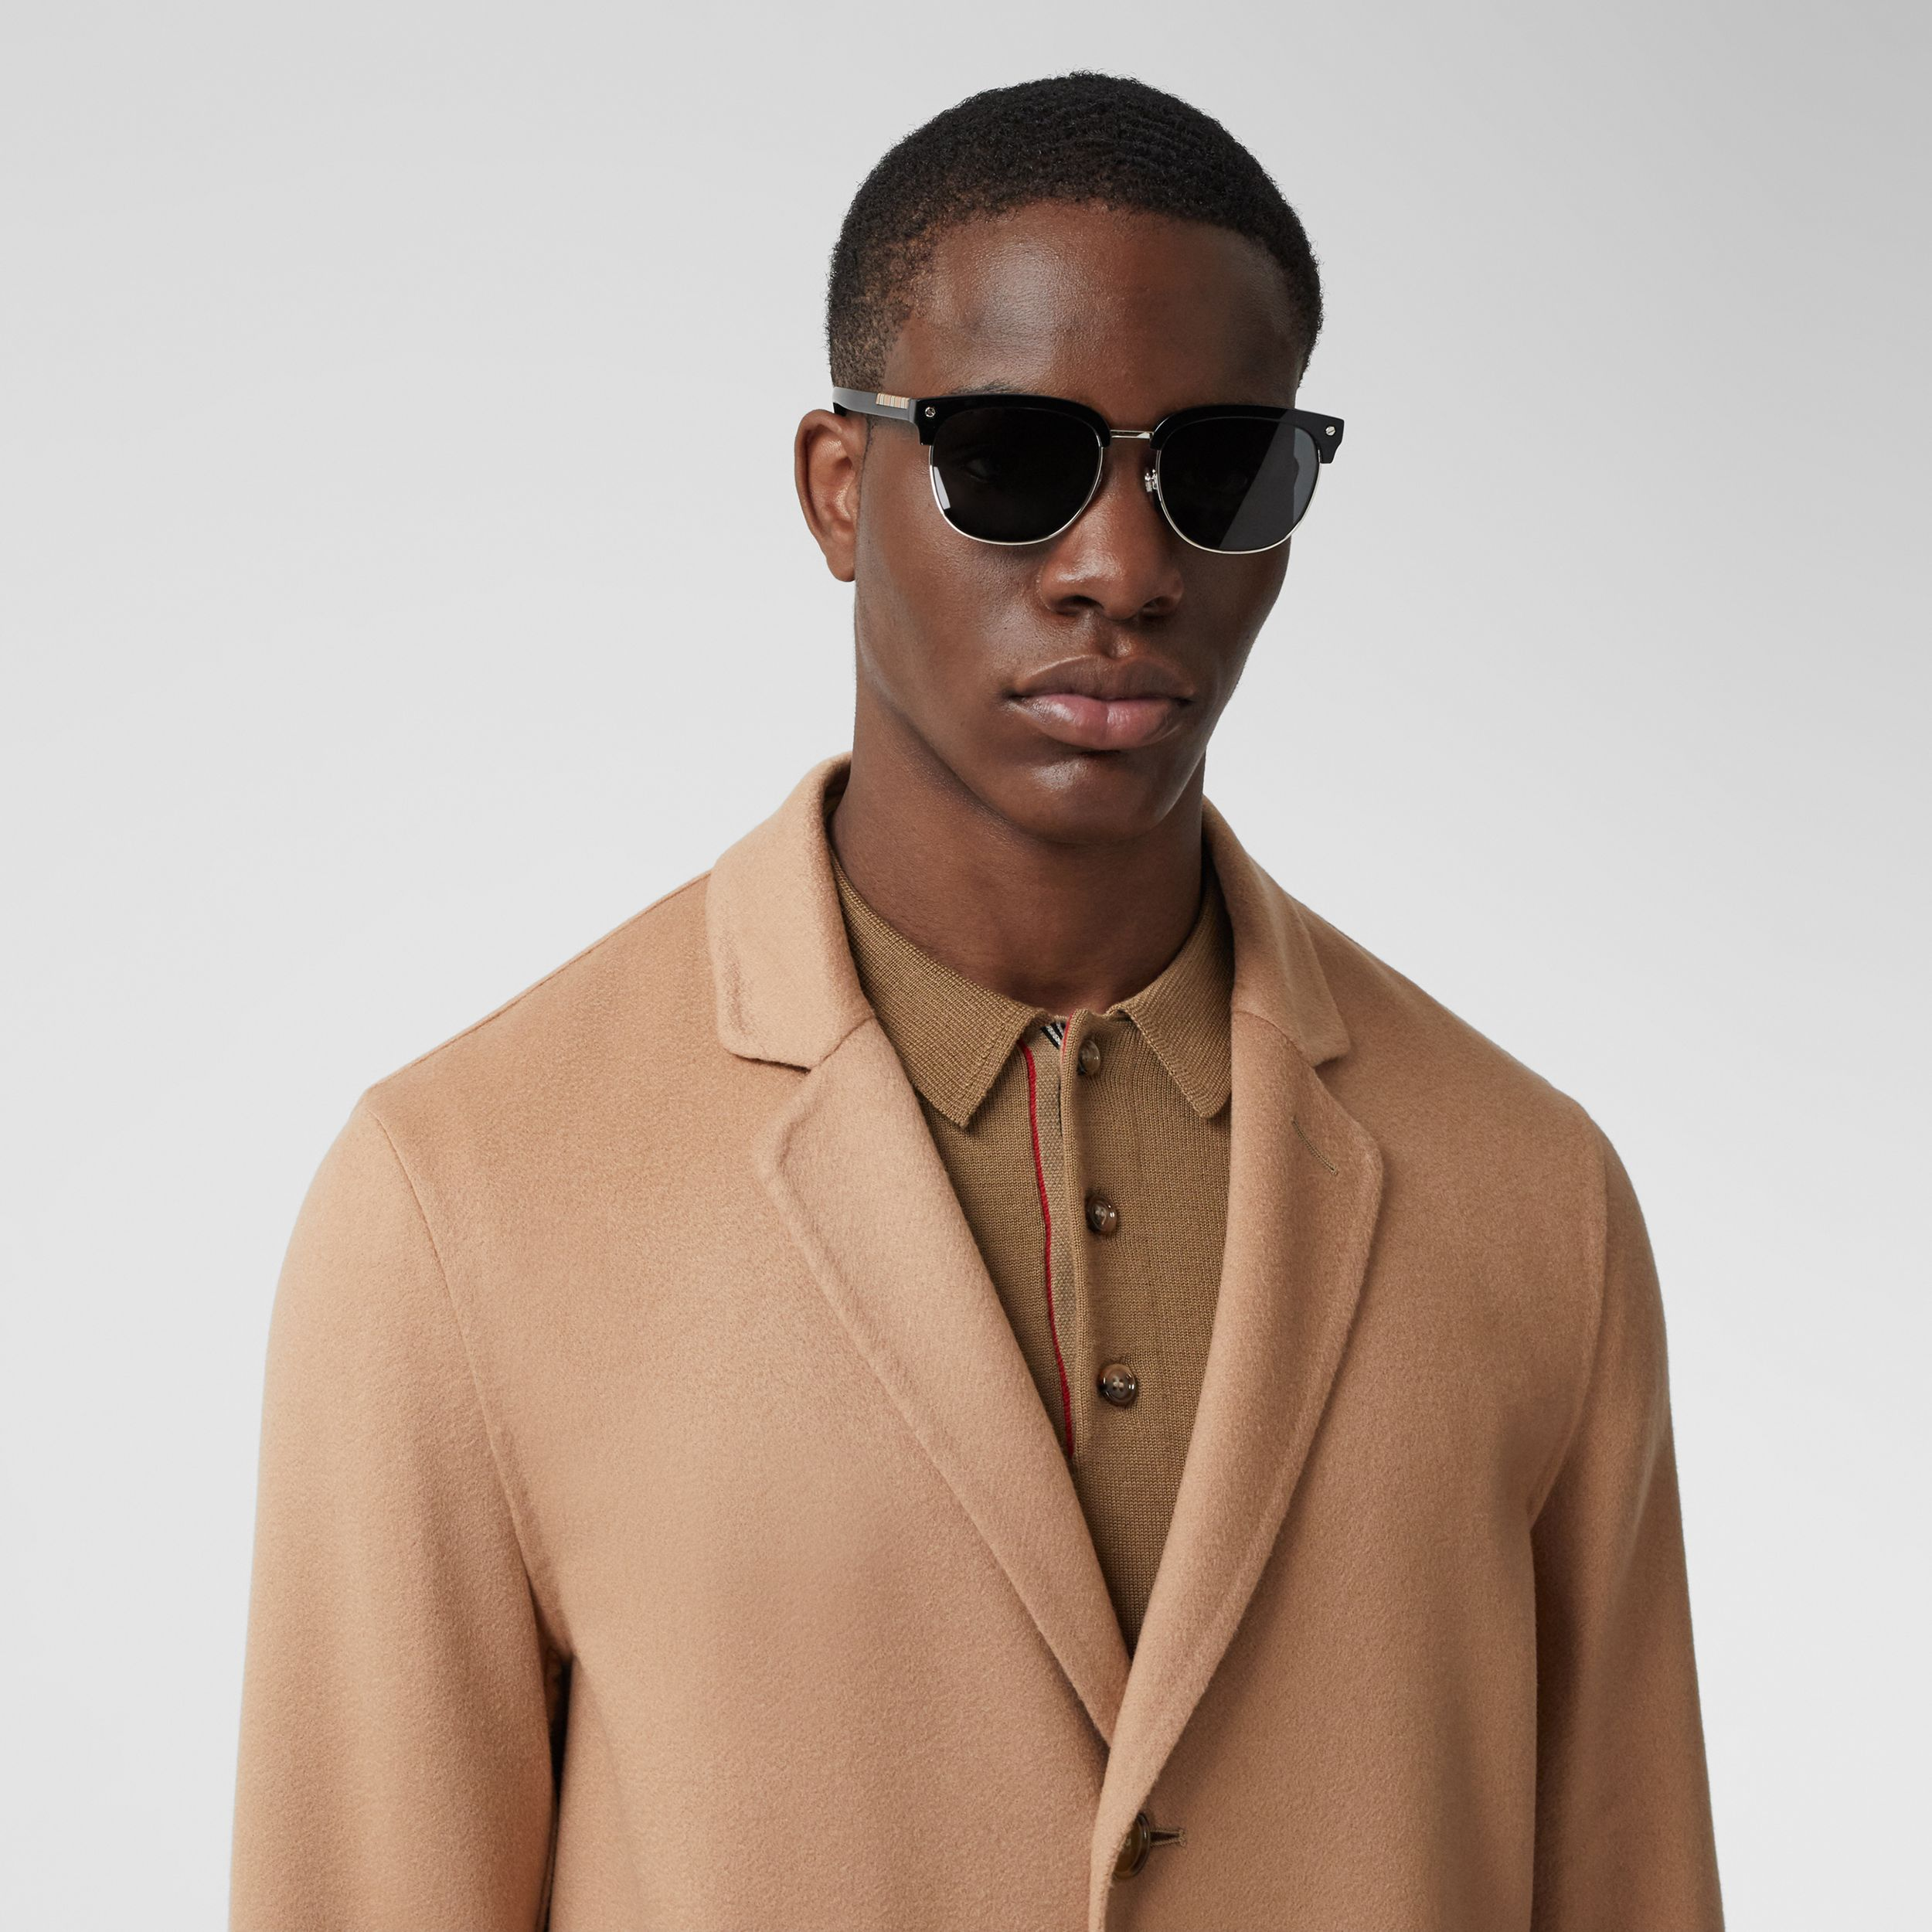 Double-faced Cashmere Lab Coat in Camel - Men | Burberry - 2